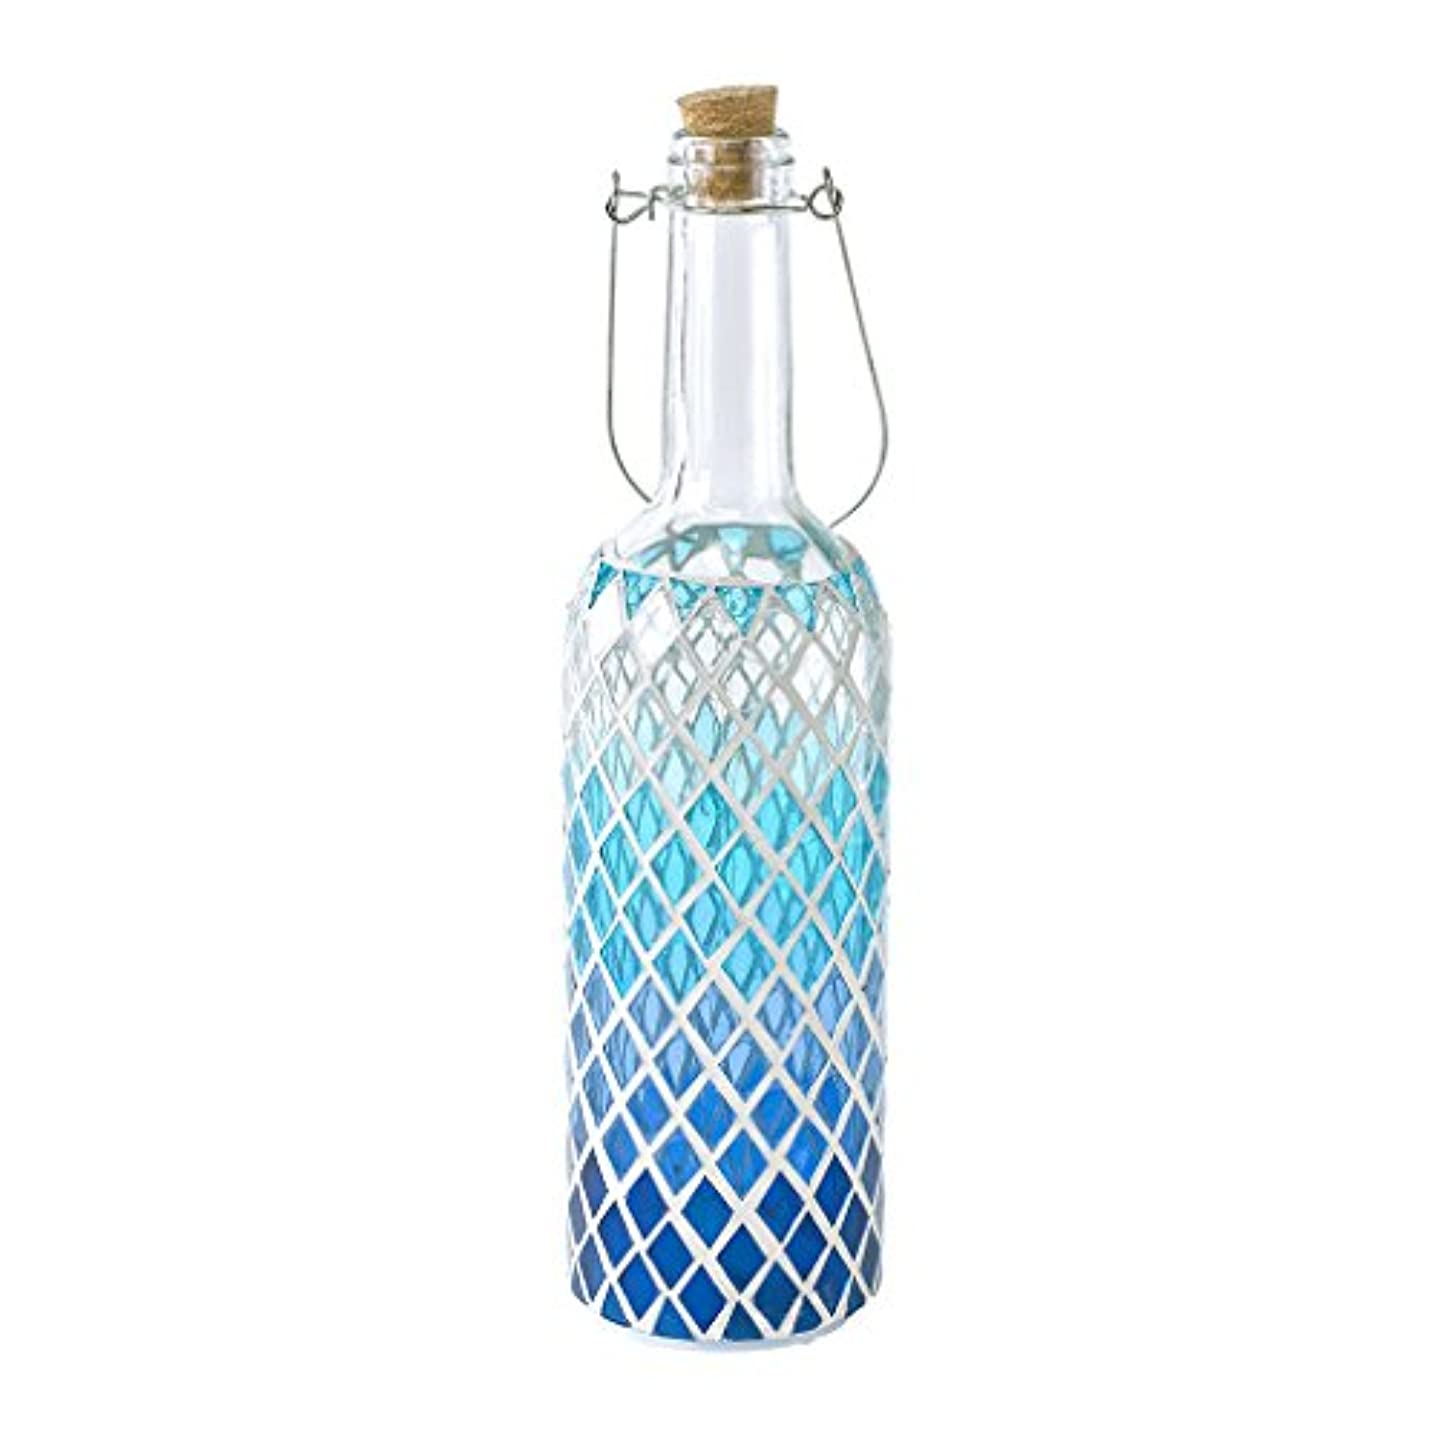 Time Concept LED Mosaic Bottle Lamp - Blue Diamond - Table Centerpiece, Home Decor, Battery-Operated